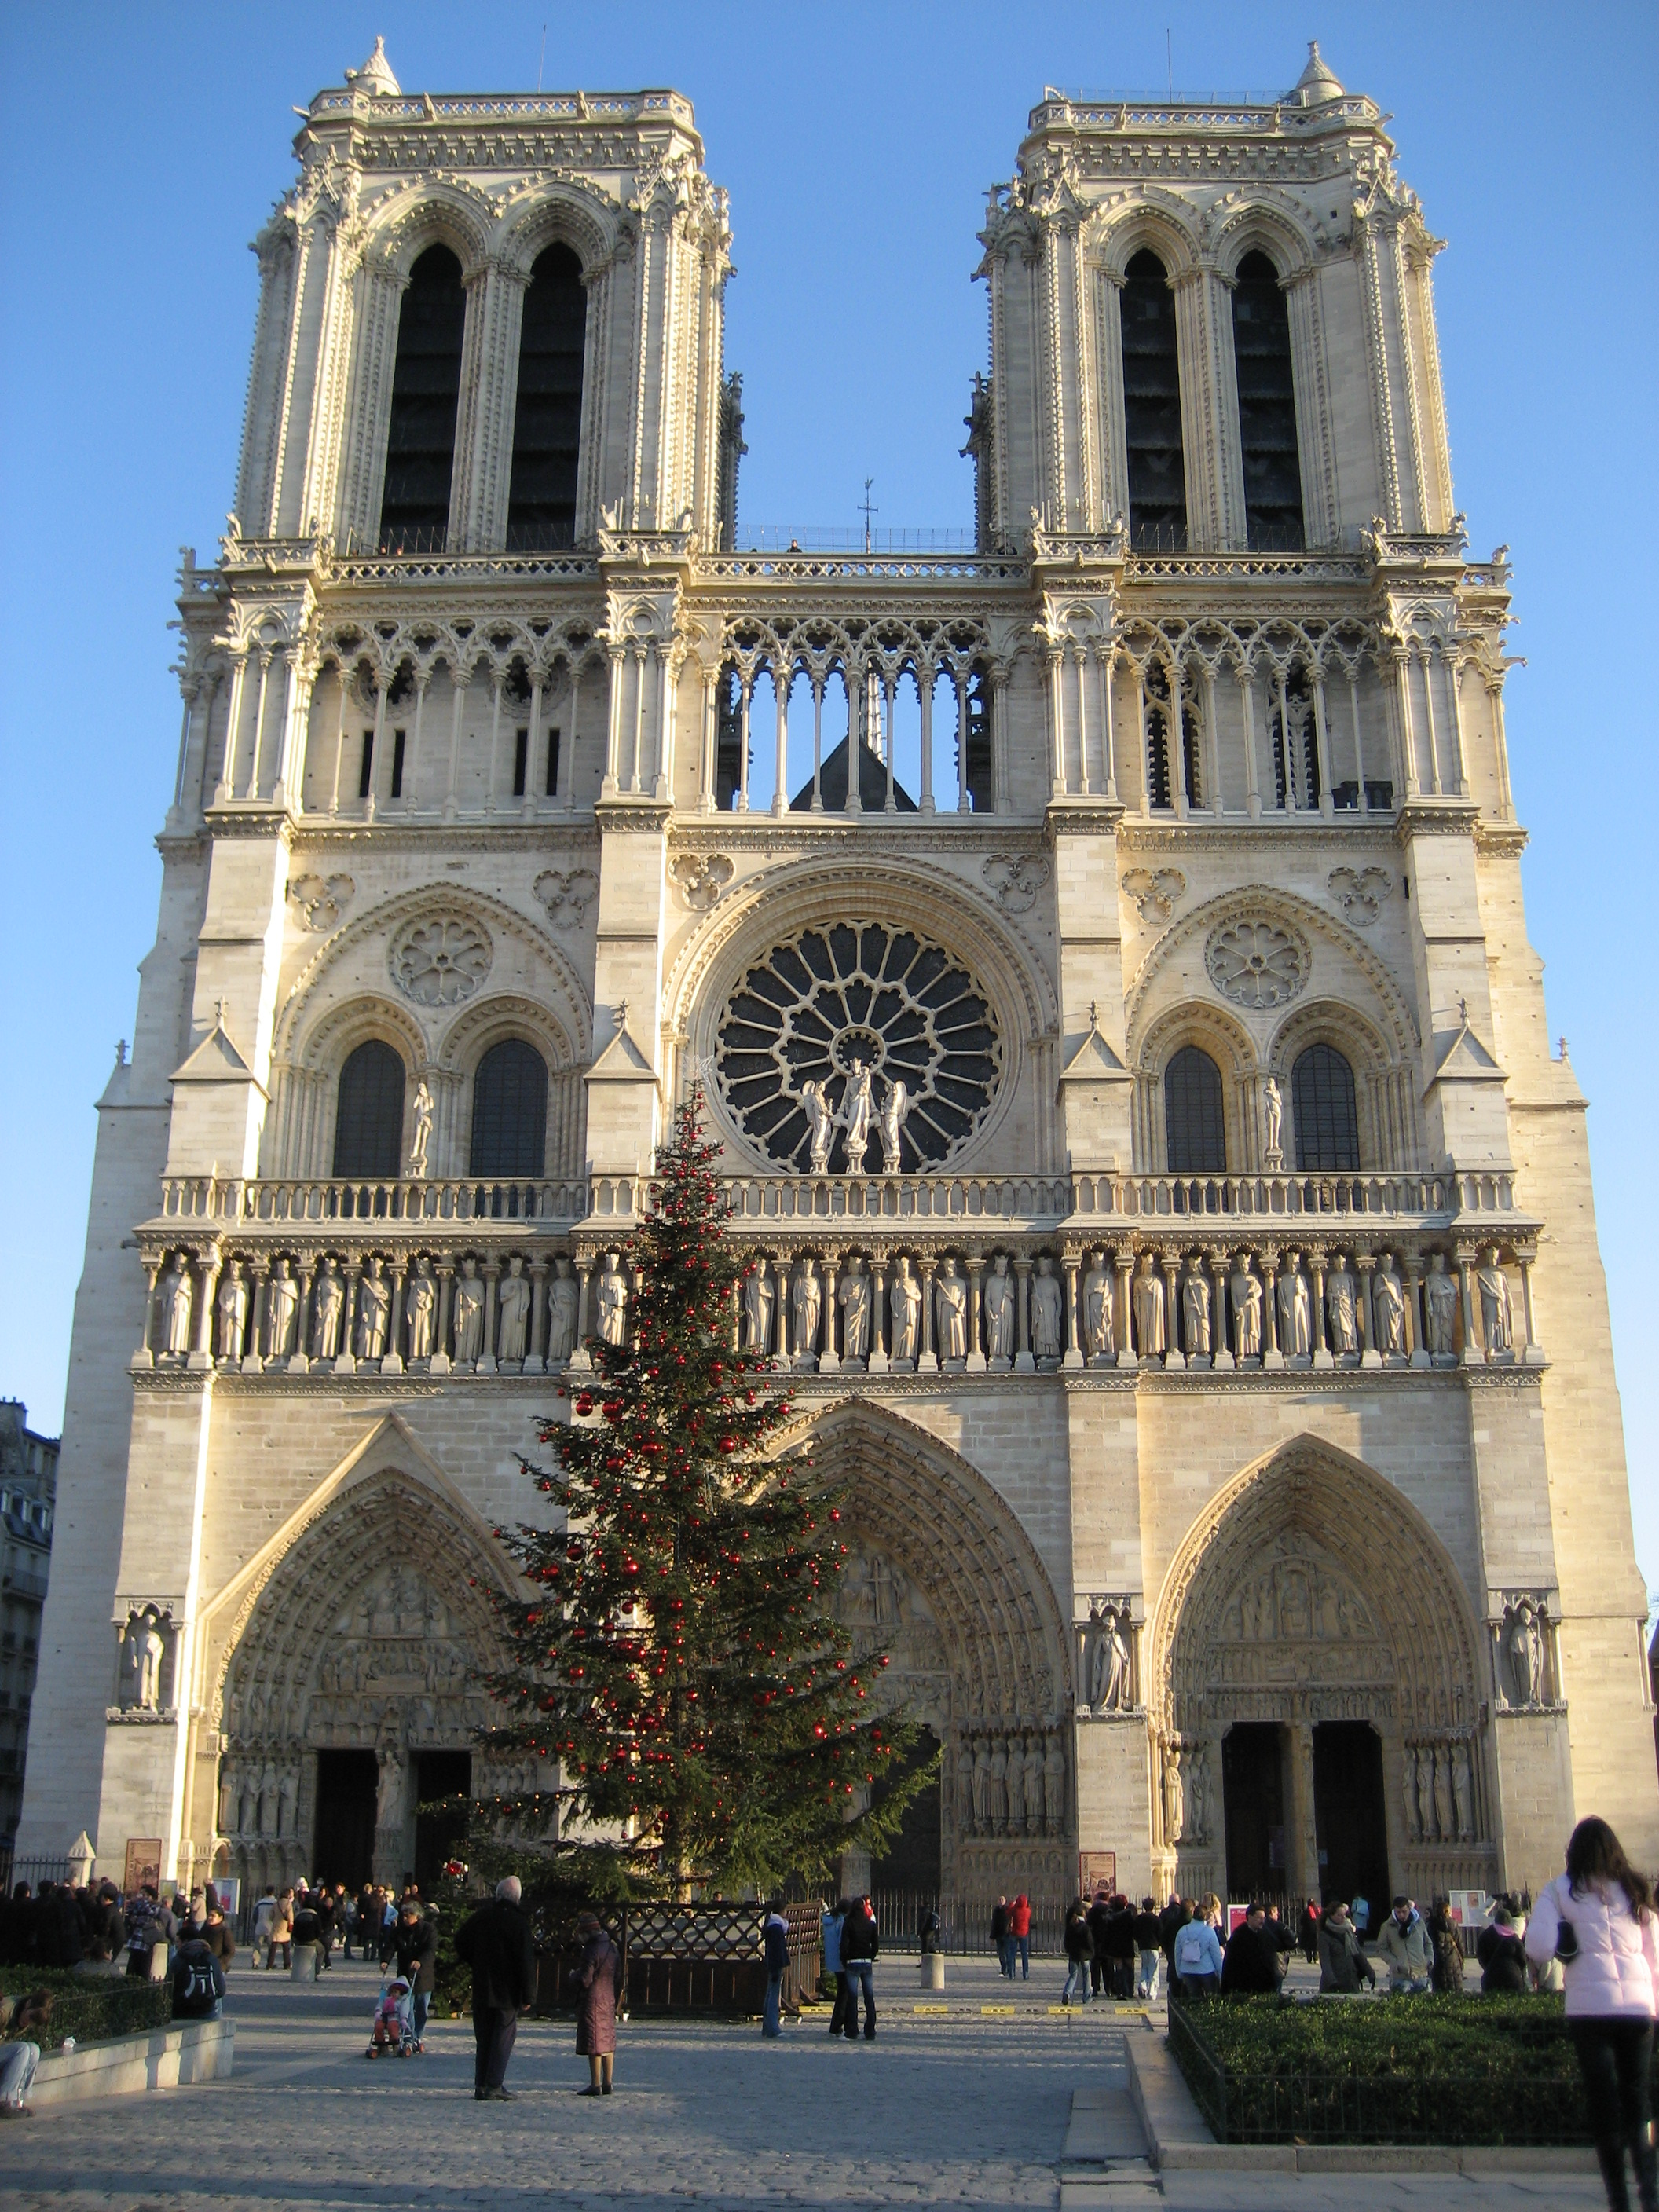 File:Notre Dame at Christmas time.JPG - Wikimedia Commons